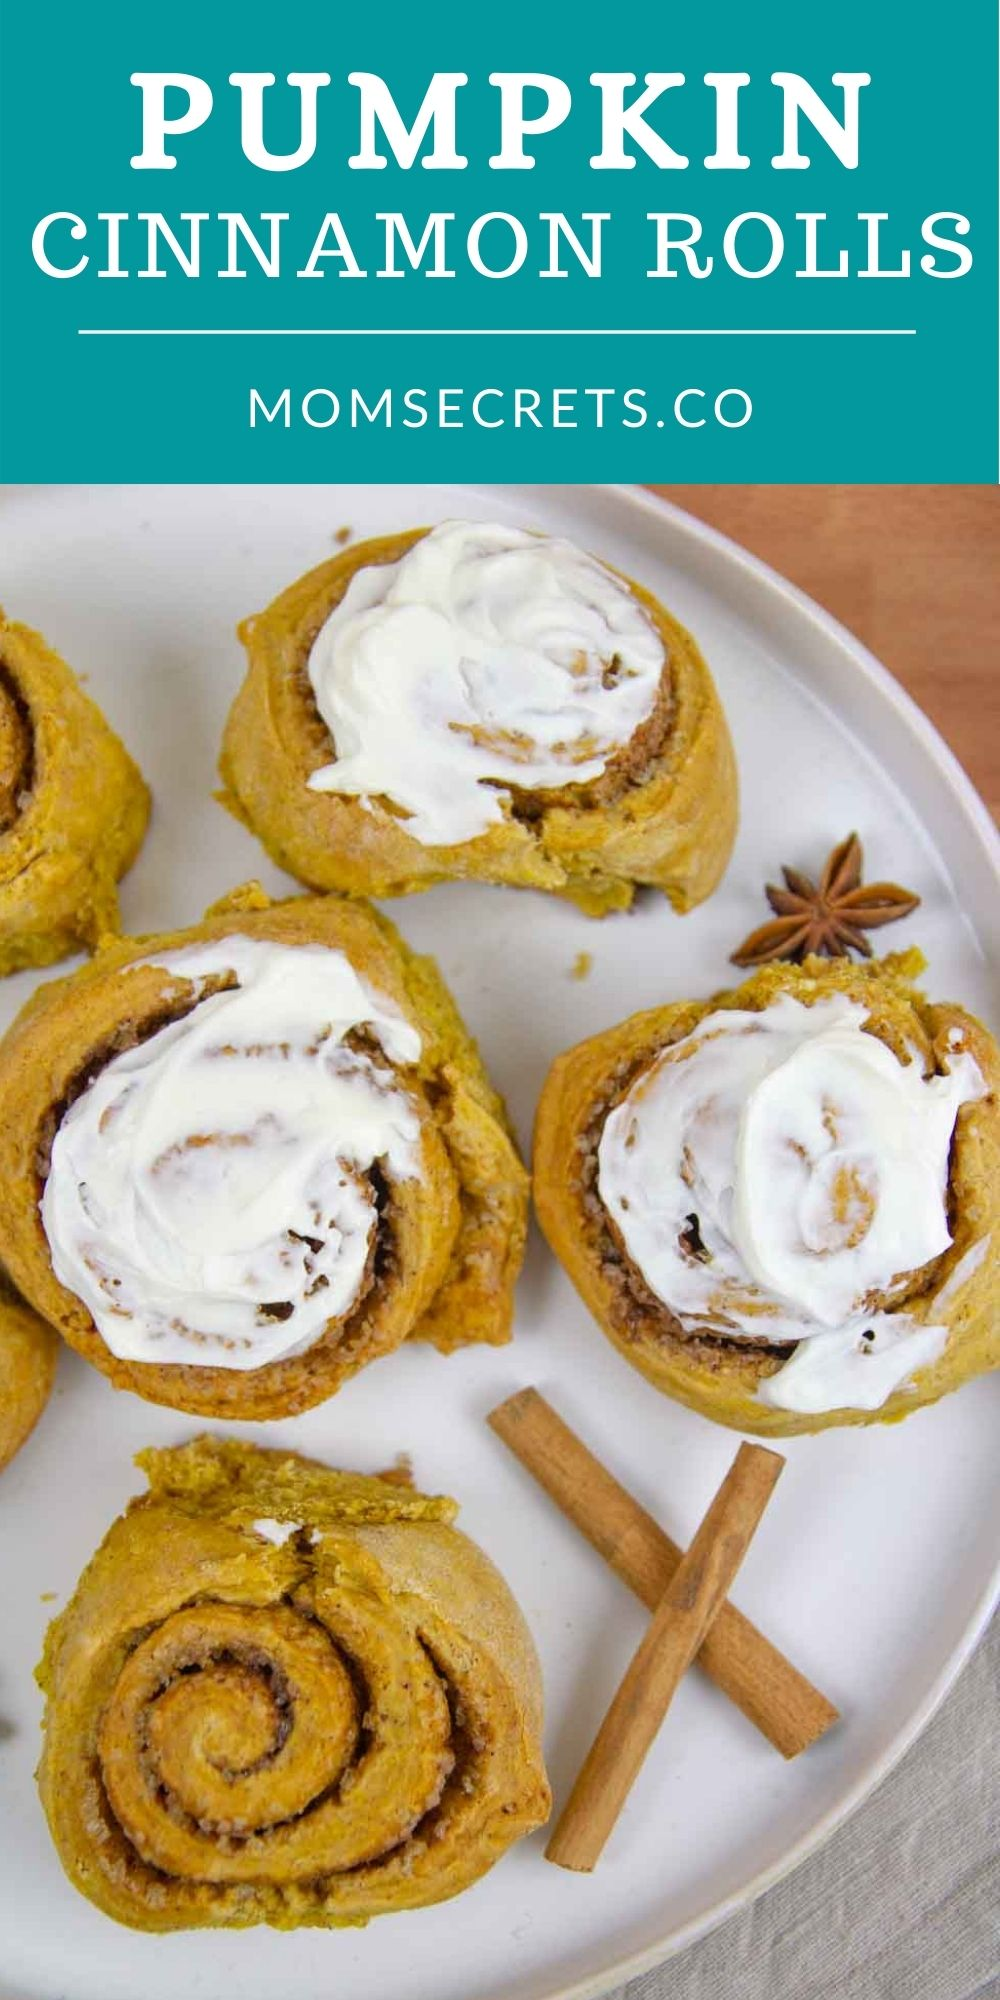 Pumpkin Cinnamon Rolls are great for Thanksgiving, Christmas morning, or anytime you crave the easiest, softest and all-around best ever Pumpkin Cinnamon Rolls during fall! #fallrecipes #pumpkin #thanksgivingrecipes #holidaybaking #holidayrecipes #brunch #pumpkinspice #pumpkinrecipes #cinnamonrolls #fall #autumn #thanksgivingbreakfast